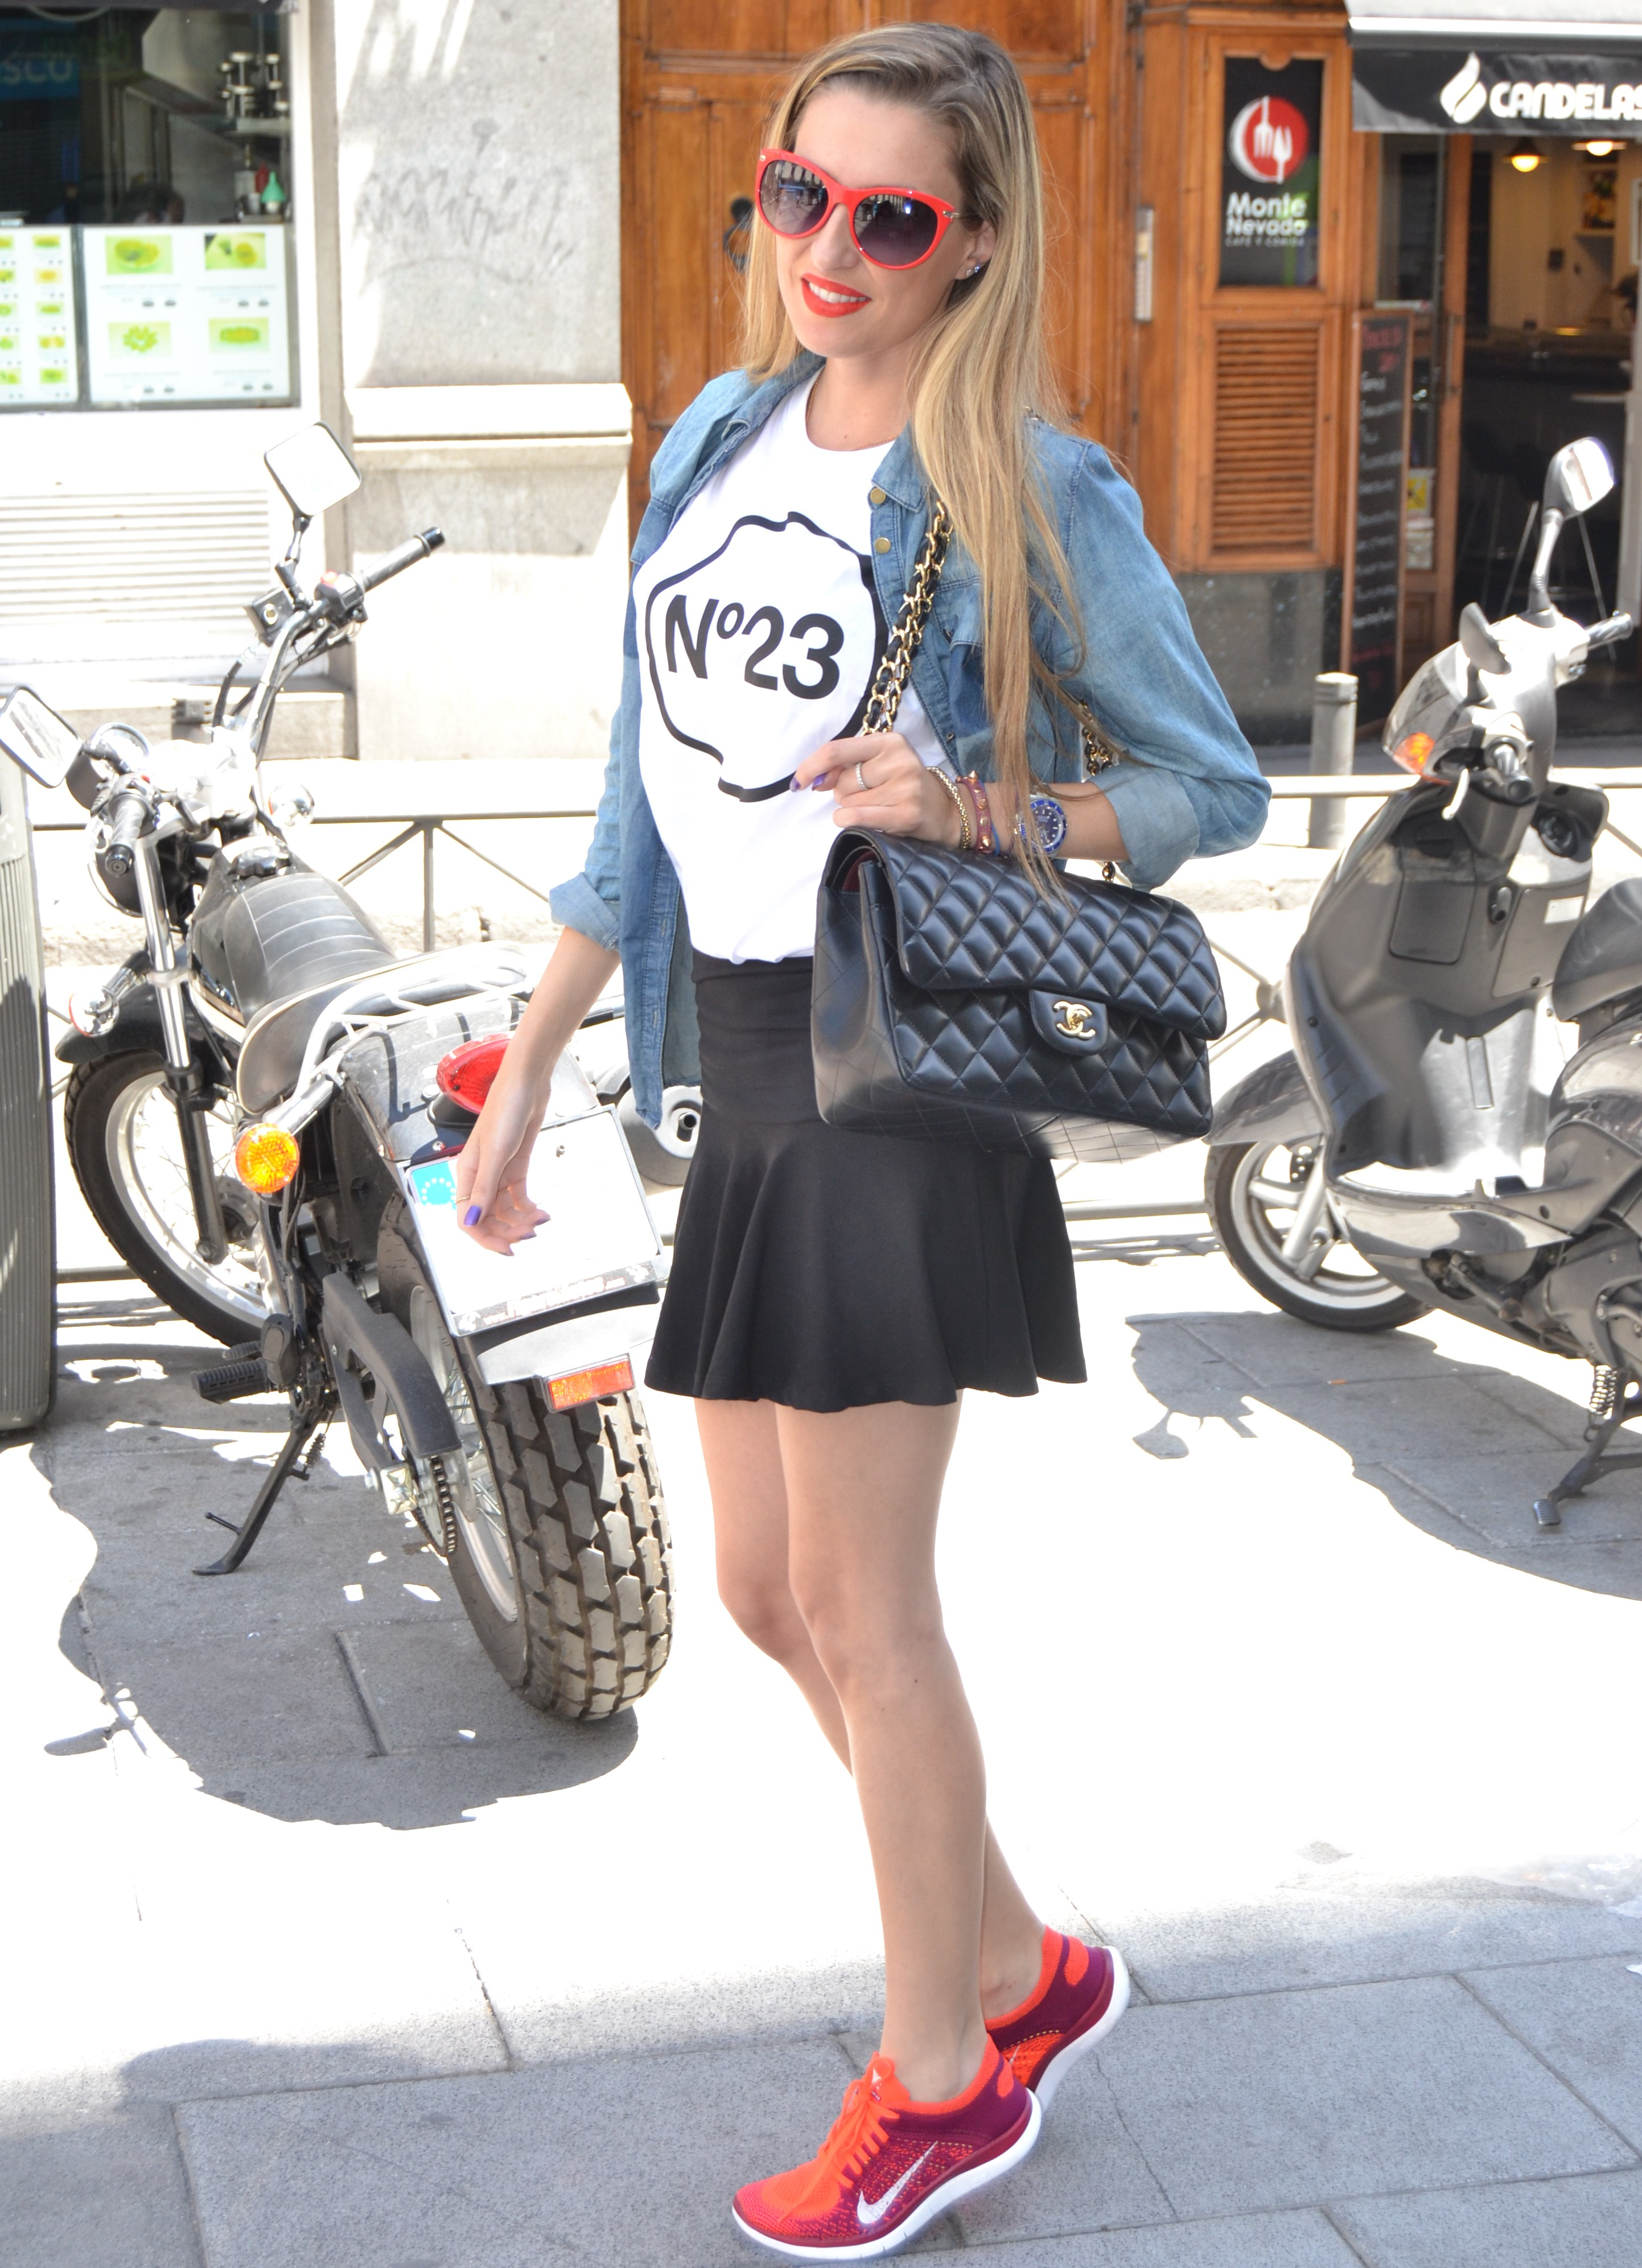 Nike_Free_FlyKnight_Sneakers_Chanel_255_Chanel_Bag_Guess_Sunglasses_Denim_Shirt_Lara_Martin_Gilarranz_Bymyheels (6)